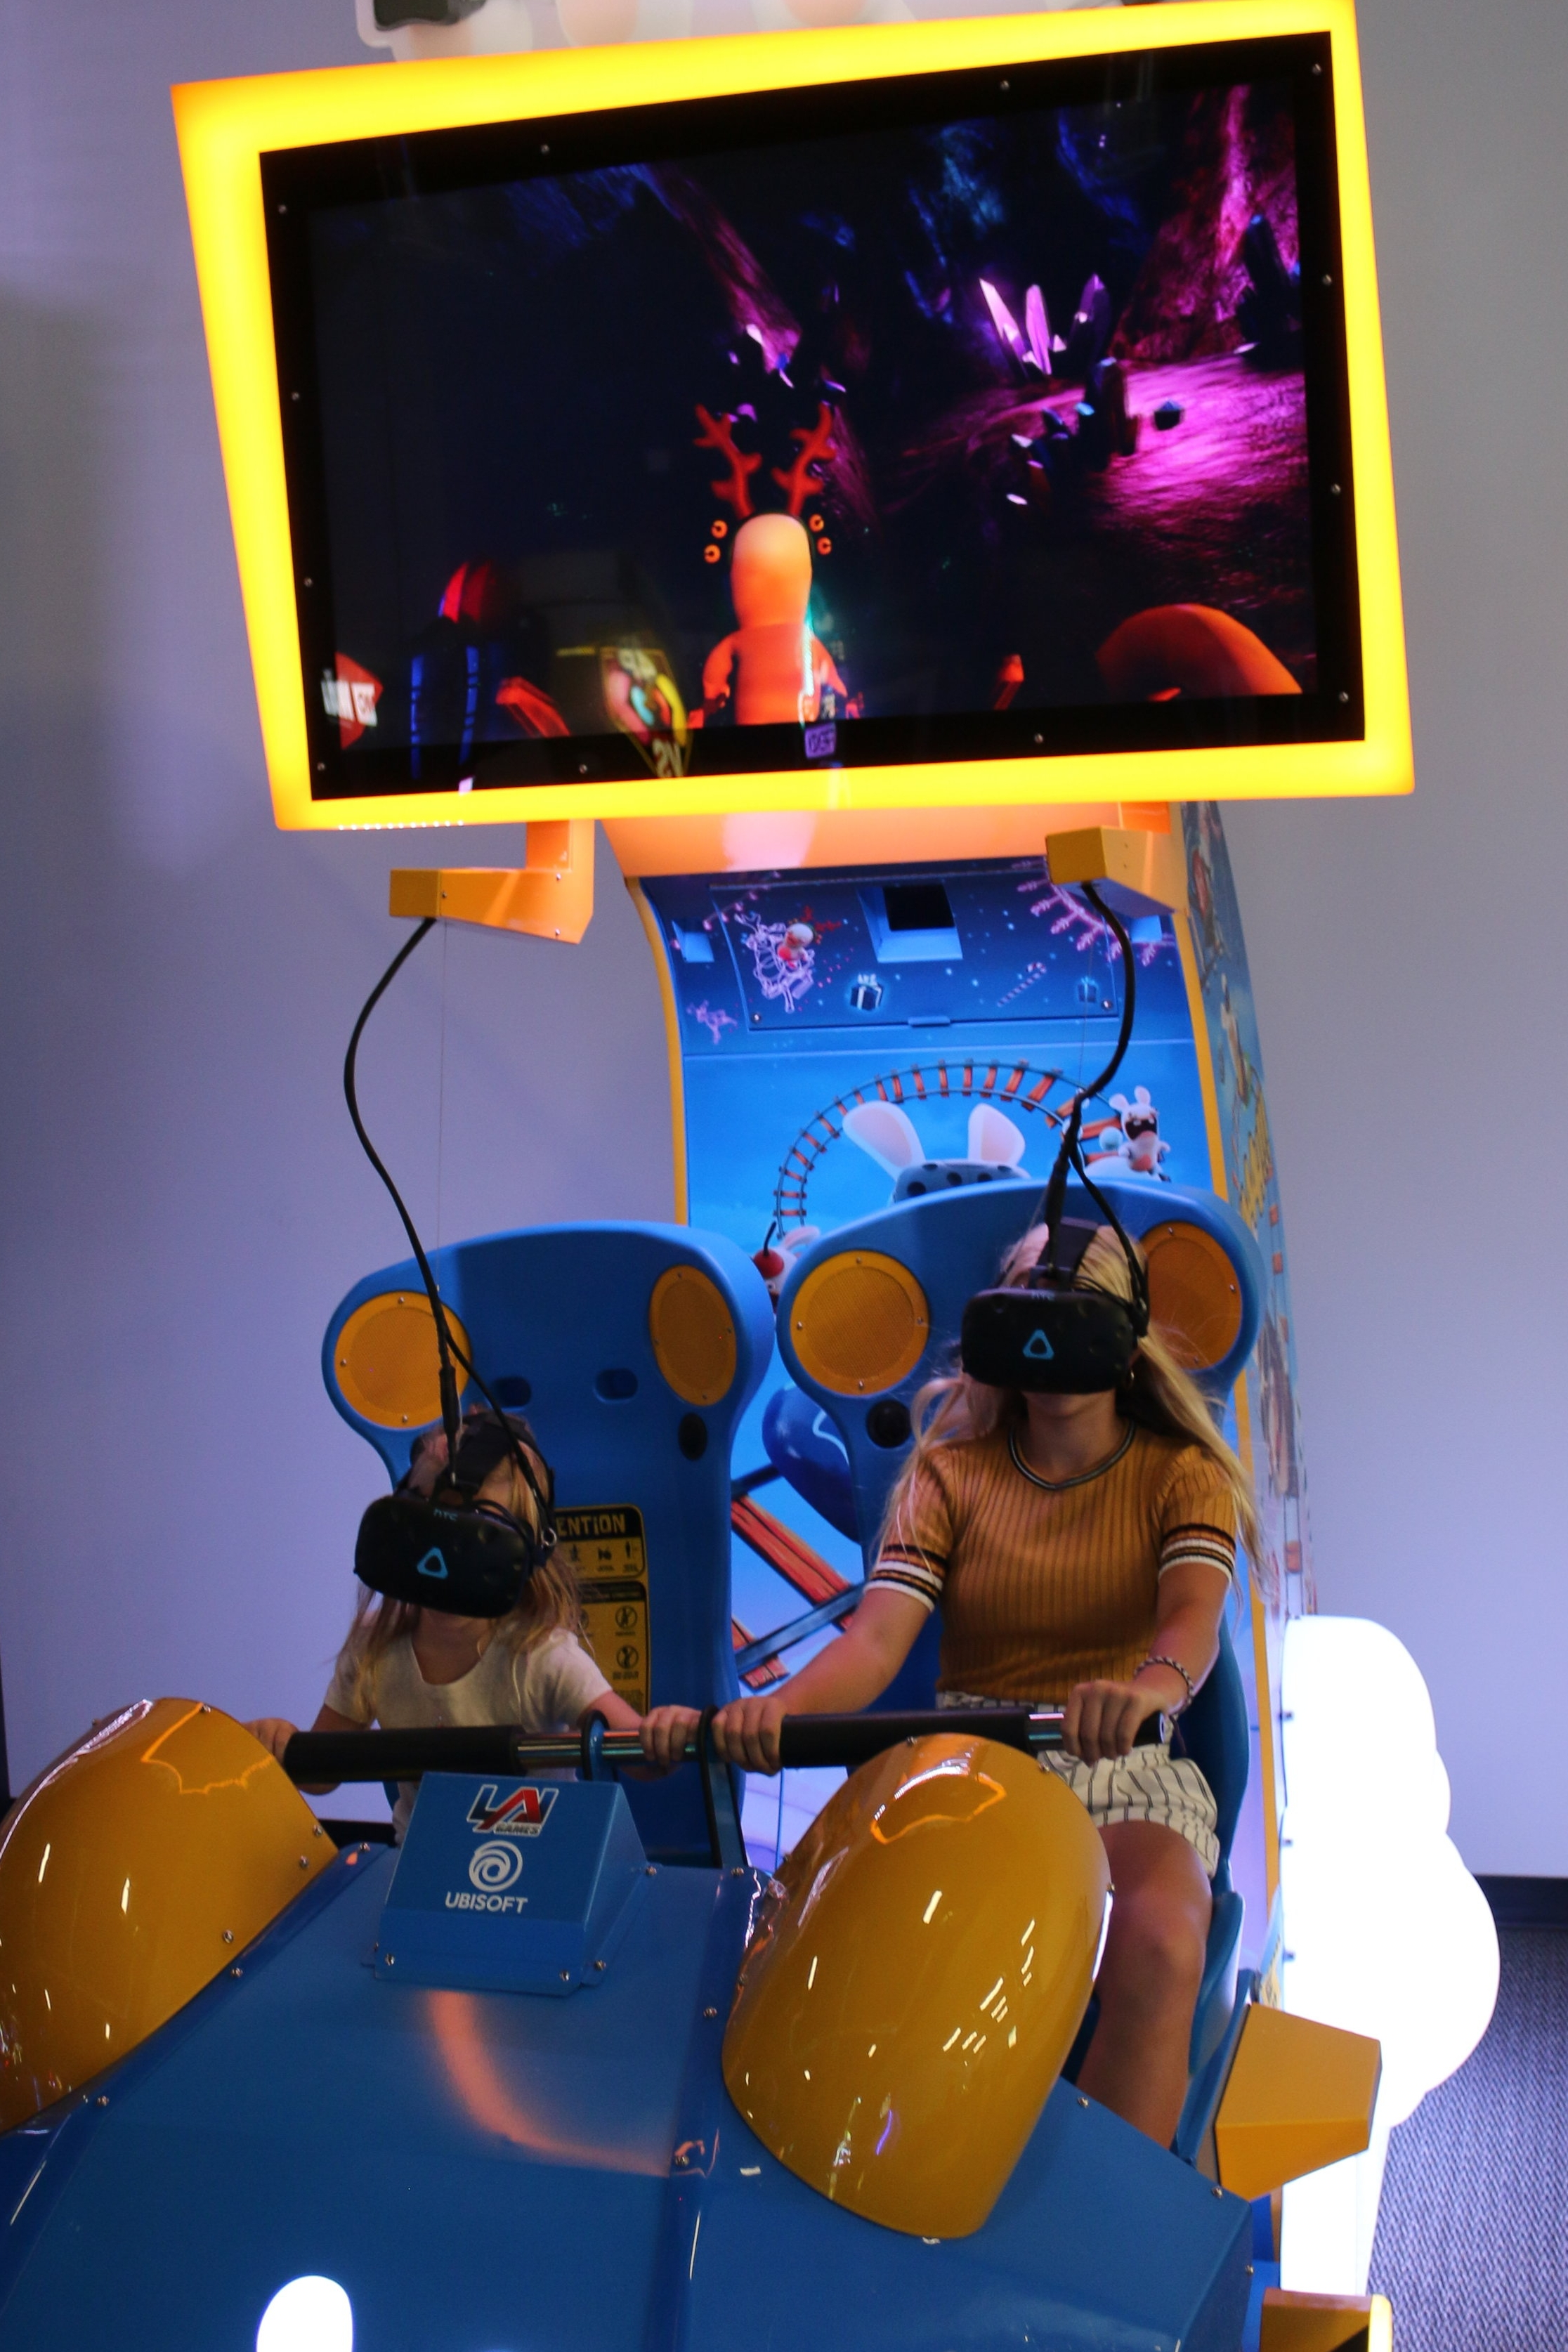 VR Rabbids RollerCoaster - Get ready to scream on this virtual reality roller coaster! You'll feel every twist, turn, fall, and slide as you cruise through an incredible digital world. Just remember to hang on tight!$3.00/ride